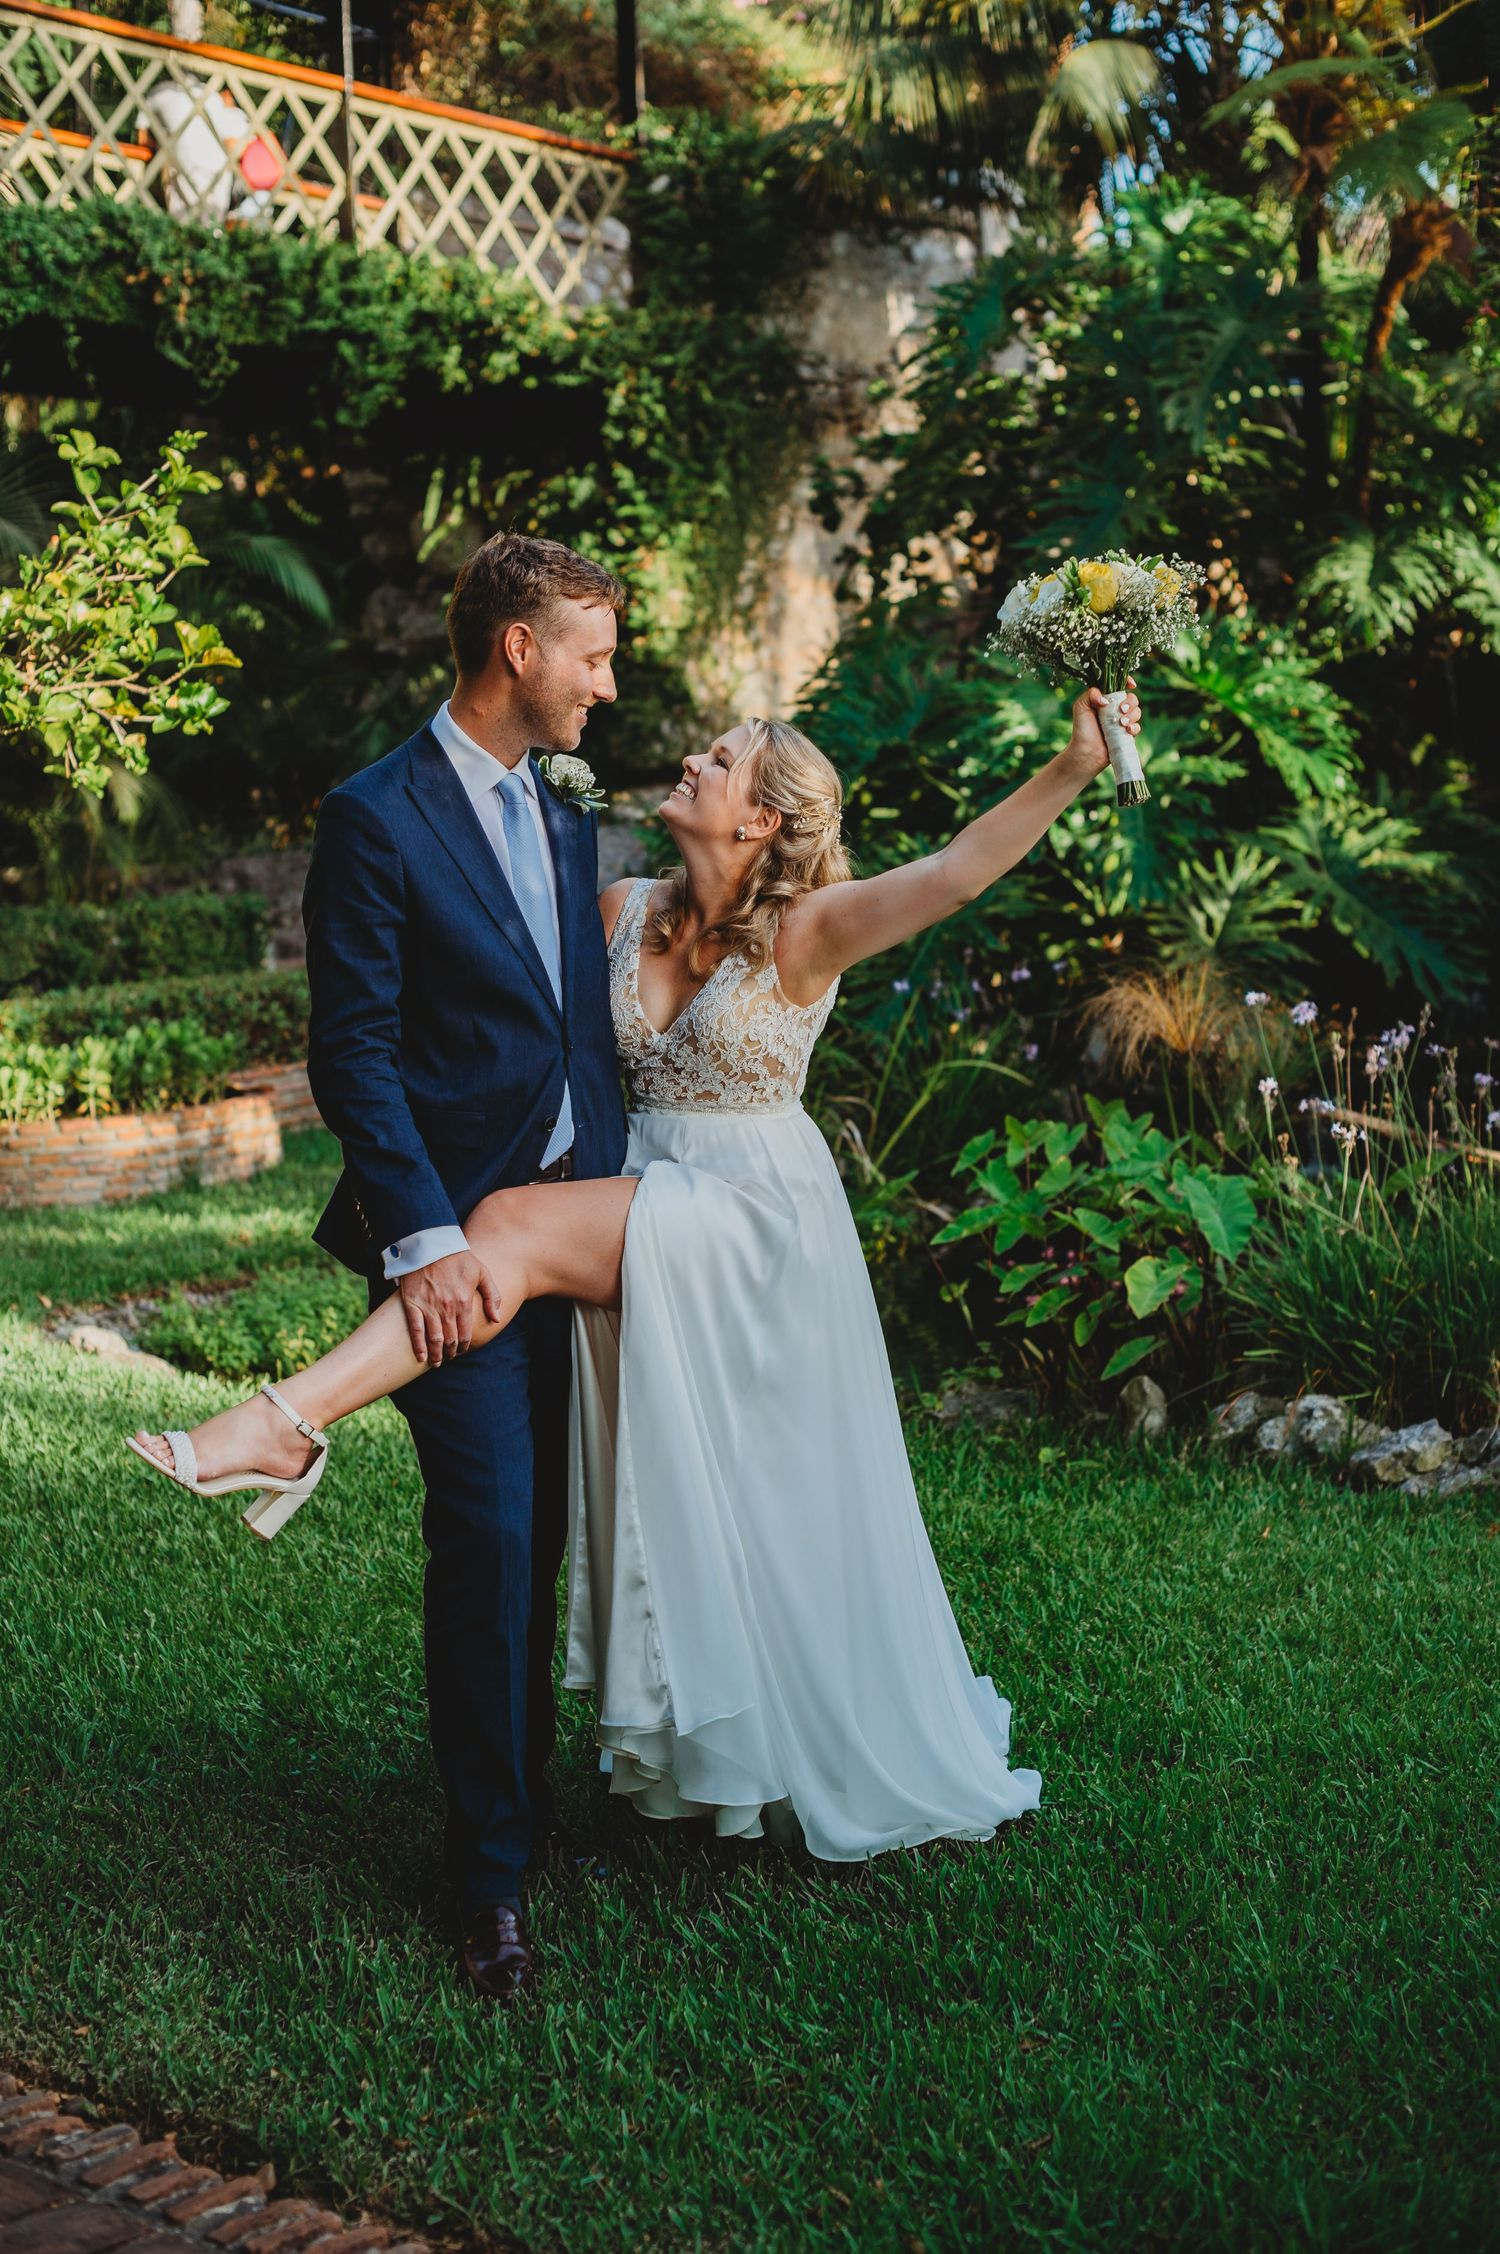 Bride giving leg to hold to groom